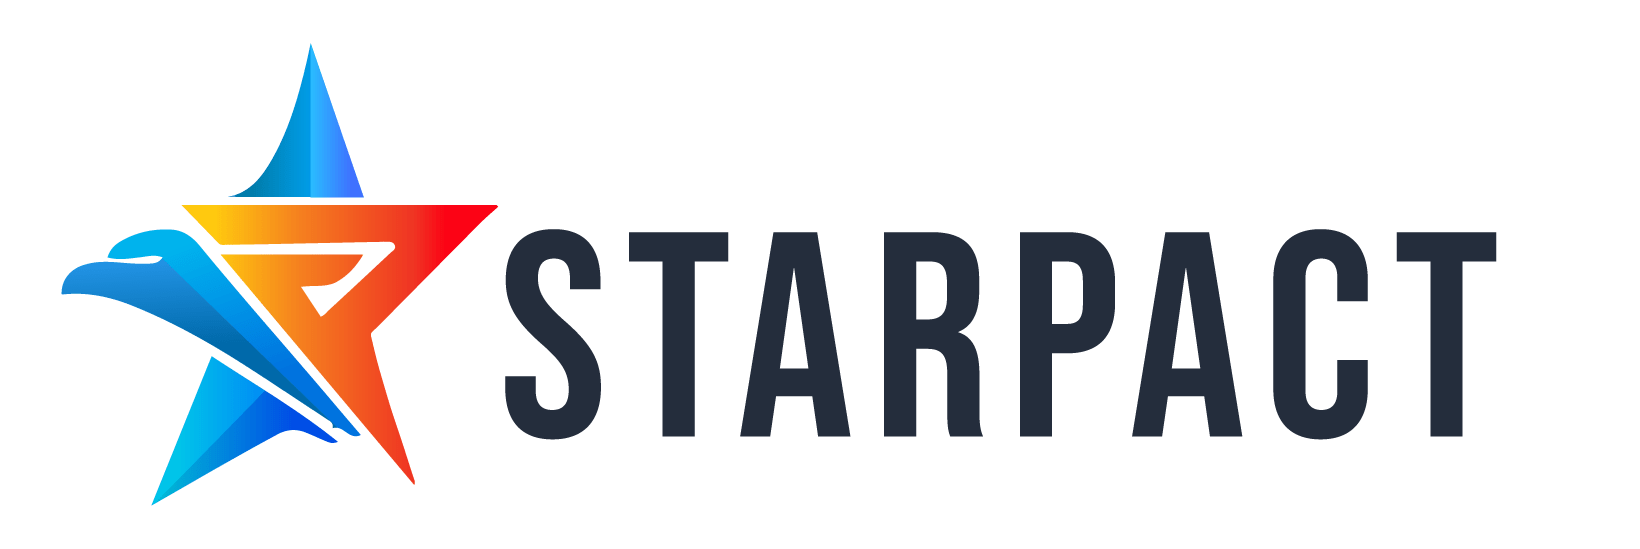 Starpact Global Services